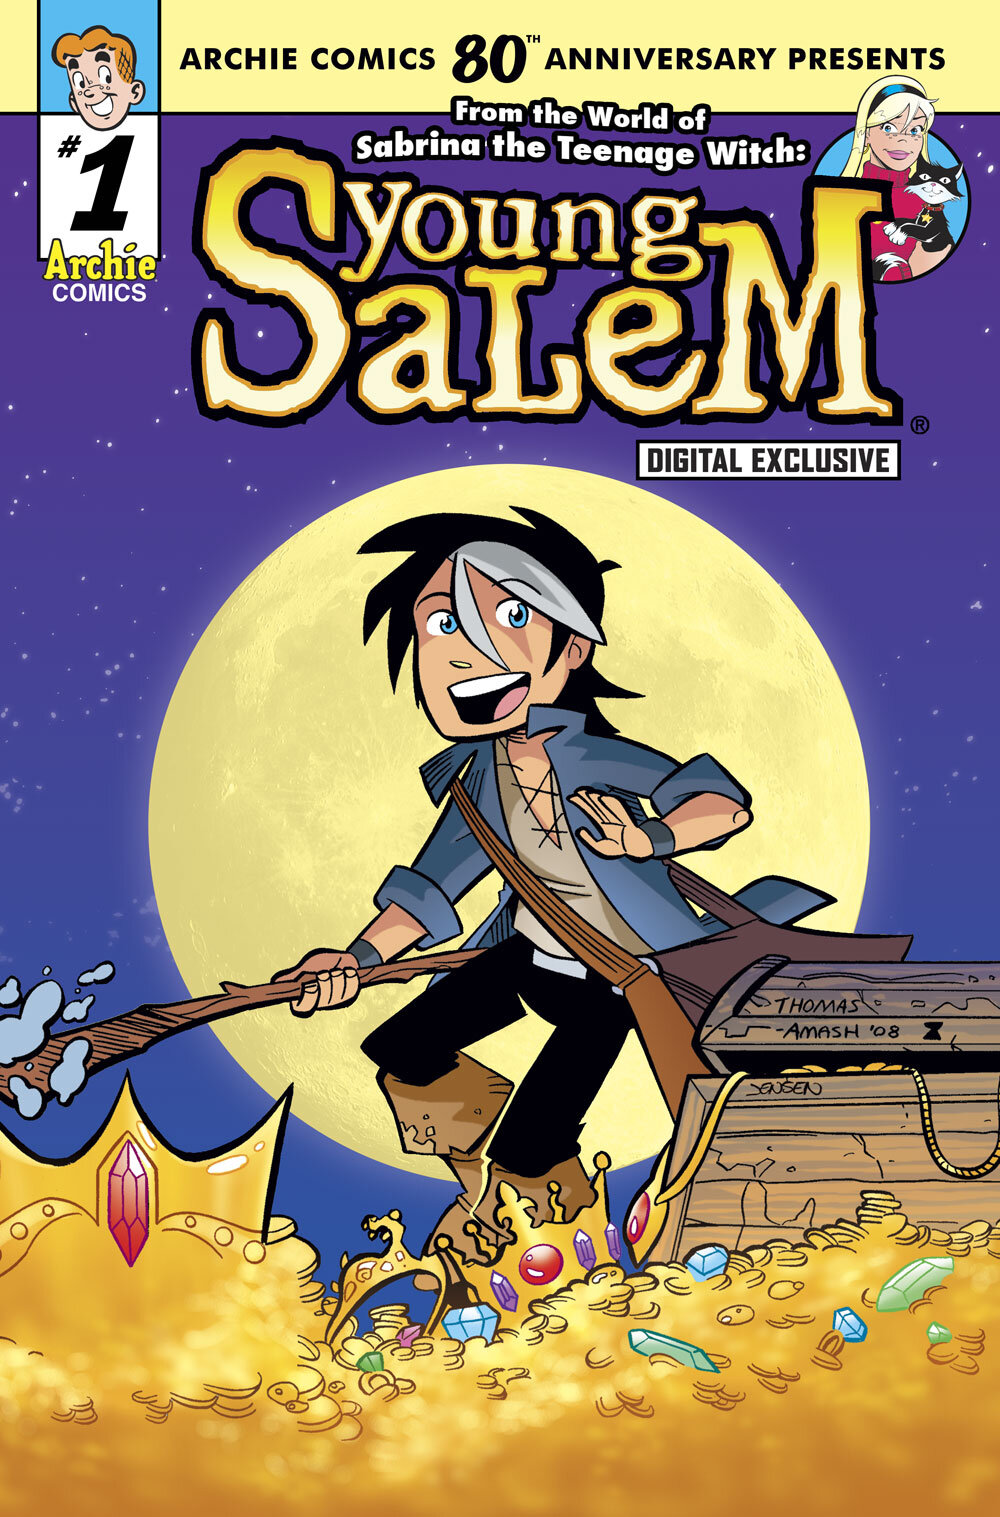 Archie-80th-Presents-Young_Salem.jpg